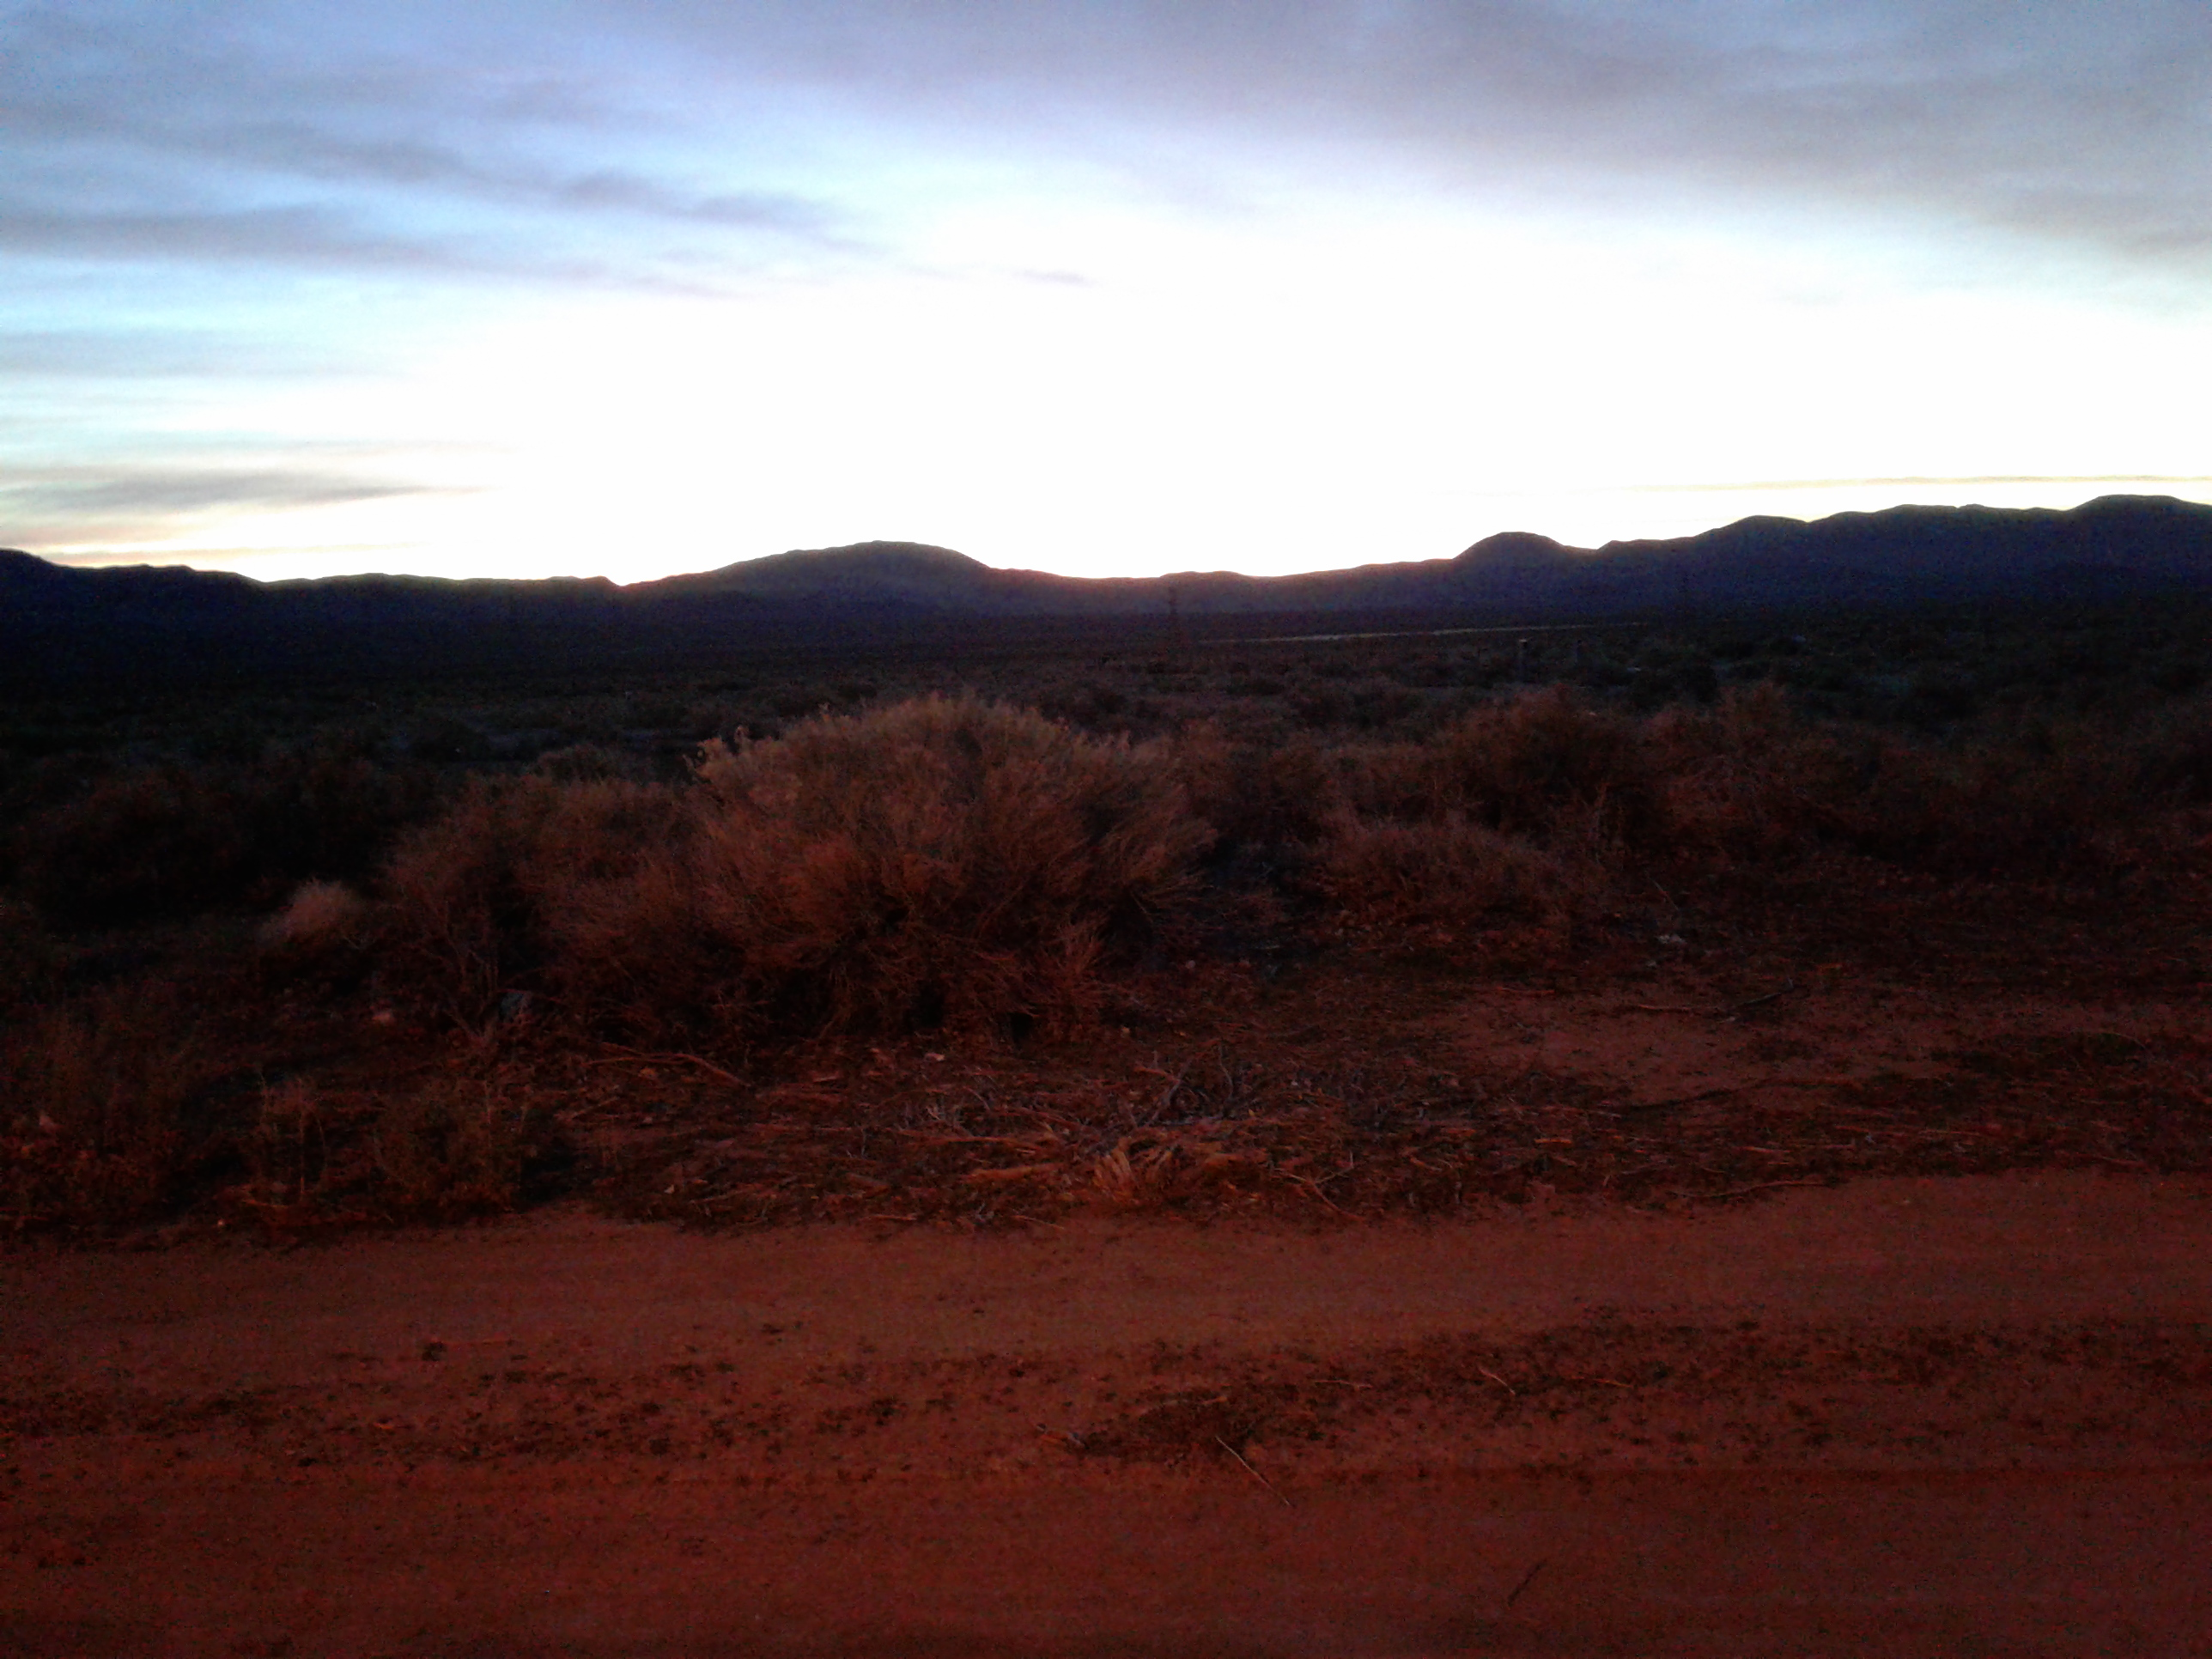 02 - Sunrise at Coso Junction rest stop 2017-03-10